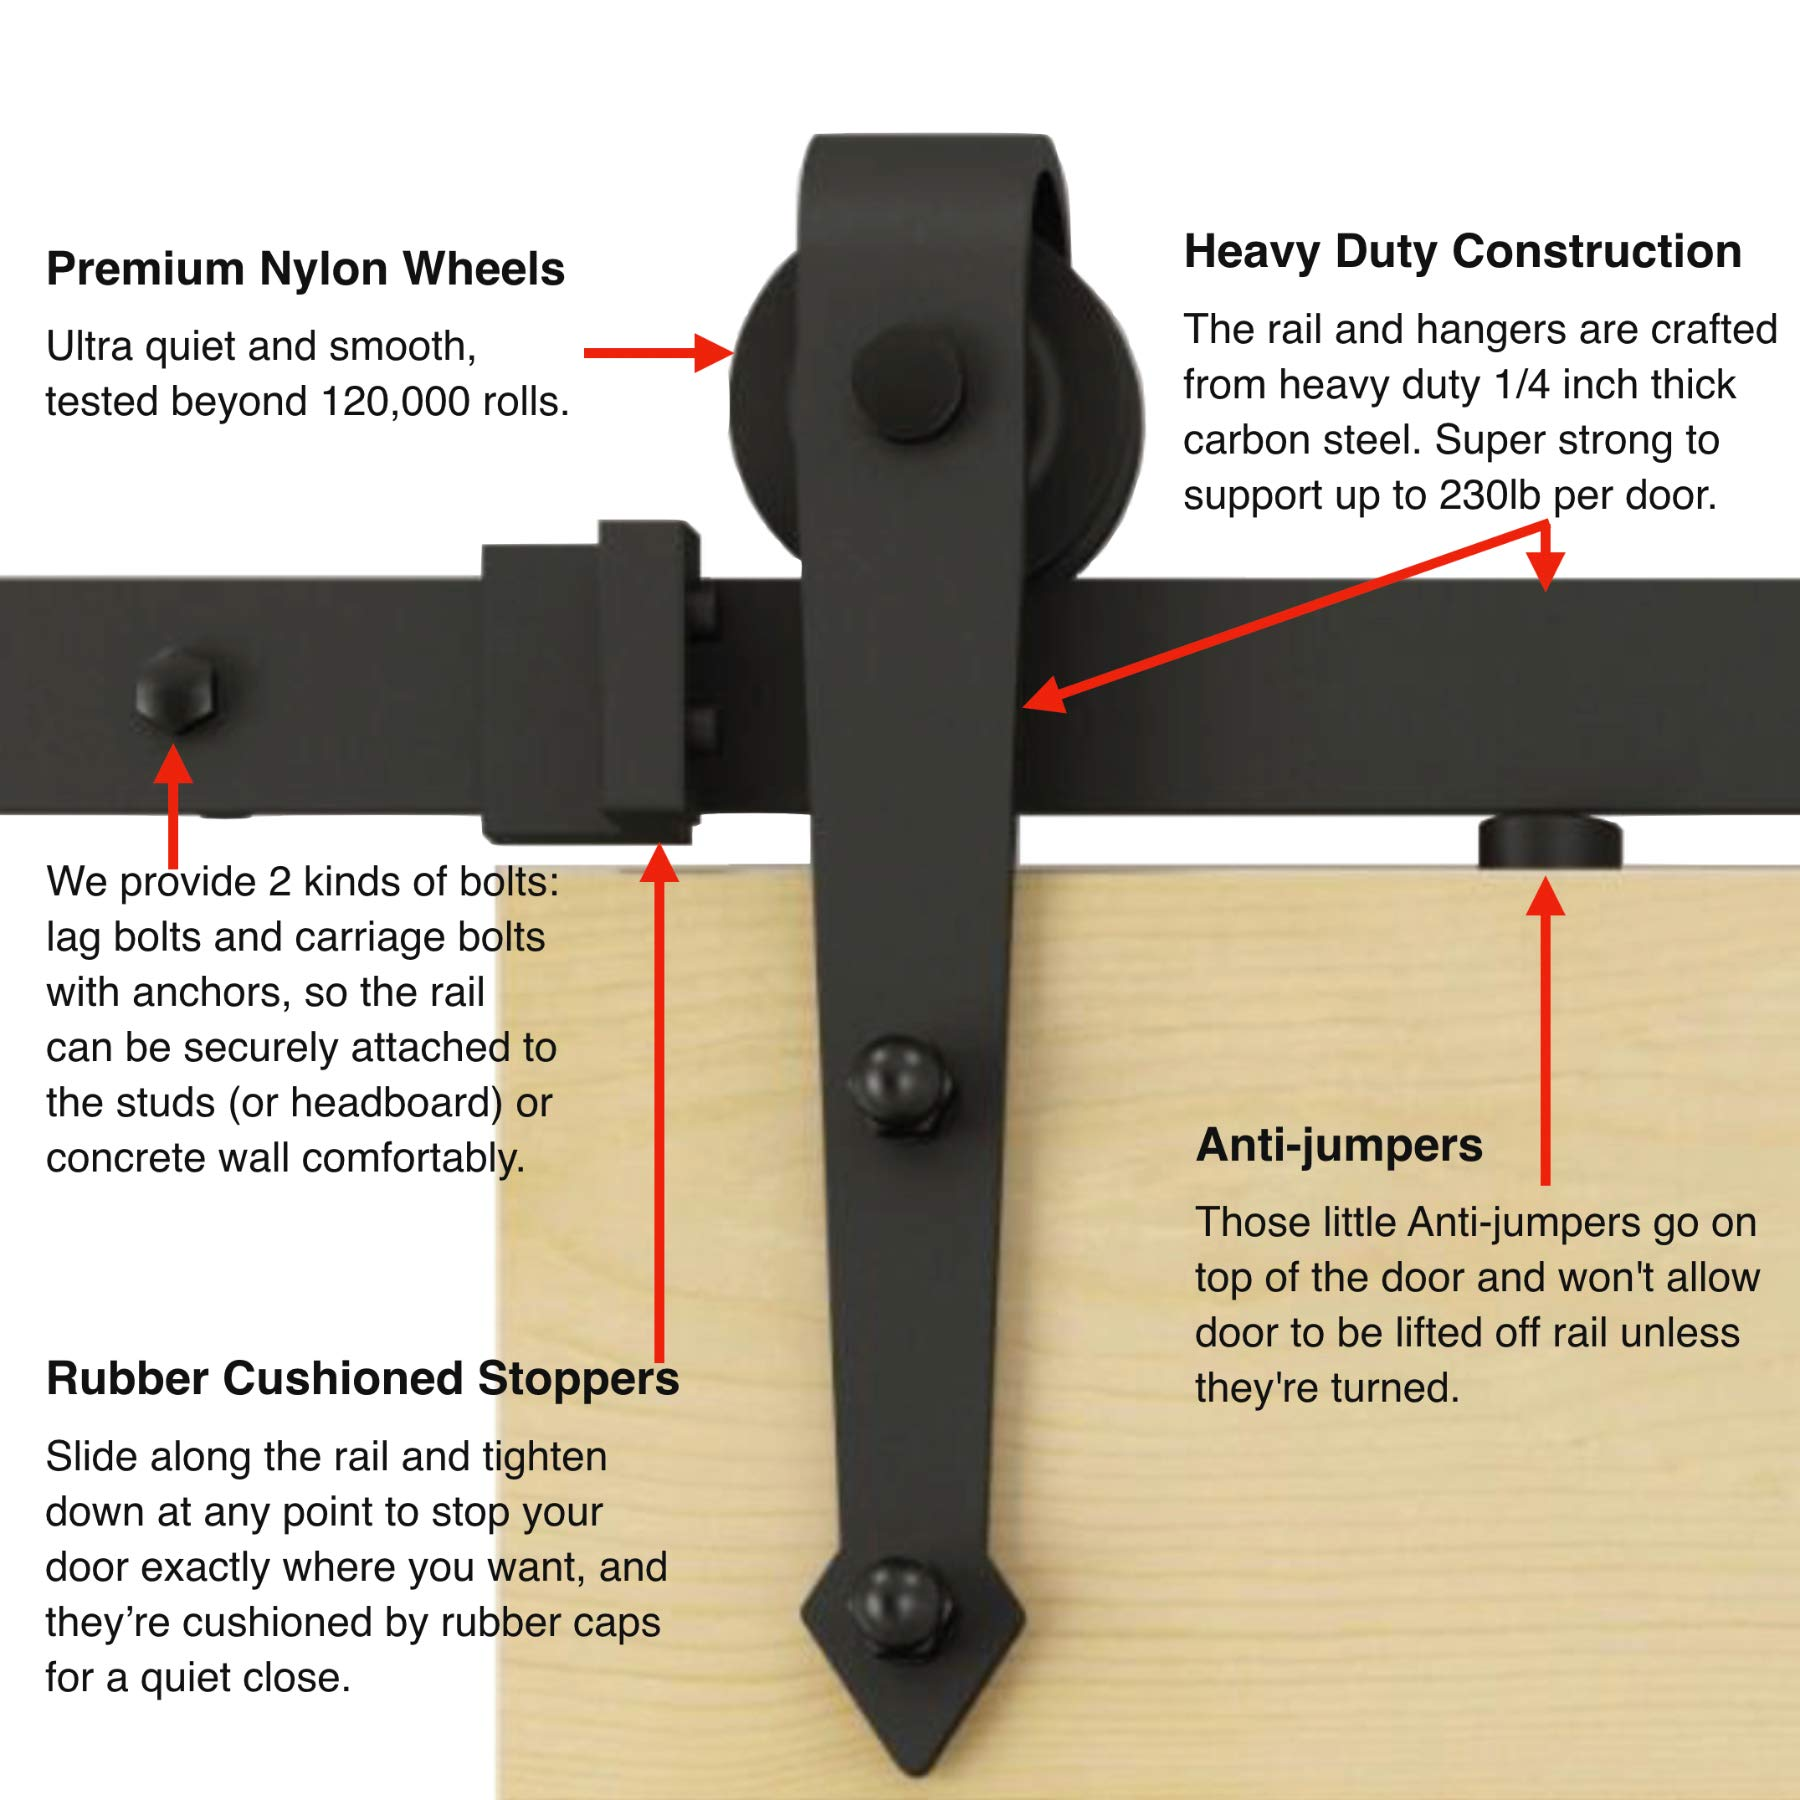 FaithLand 12FT Double Sliding Barn Door Hardware Track Kit for Wood Door Closet - 12 Foot Rail Kit Double Door - Heavy Duty - Ultra Smooth Quiet - Seamless Rail connector - Tested Beyond 120,000 Rolls by FaithLand (Image #3)